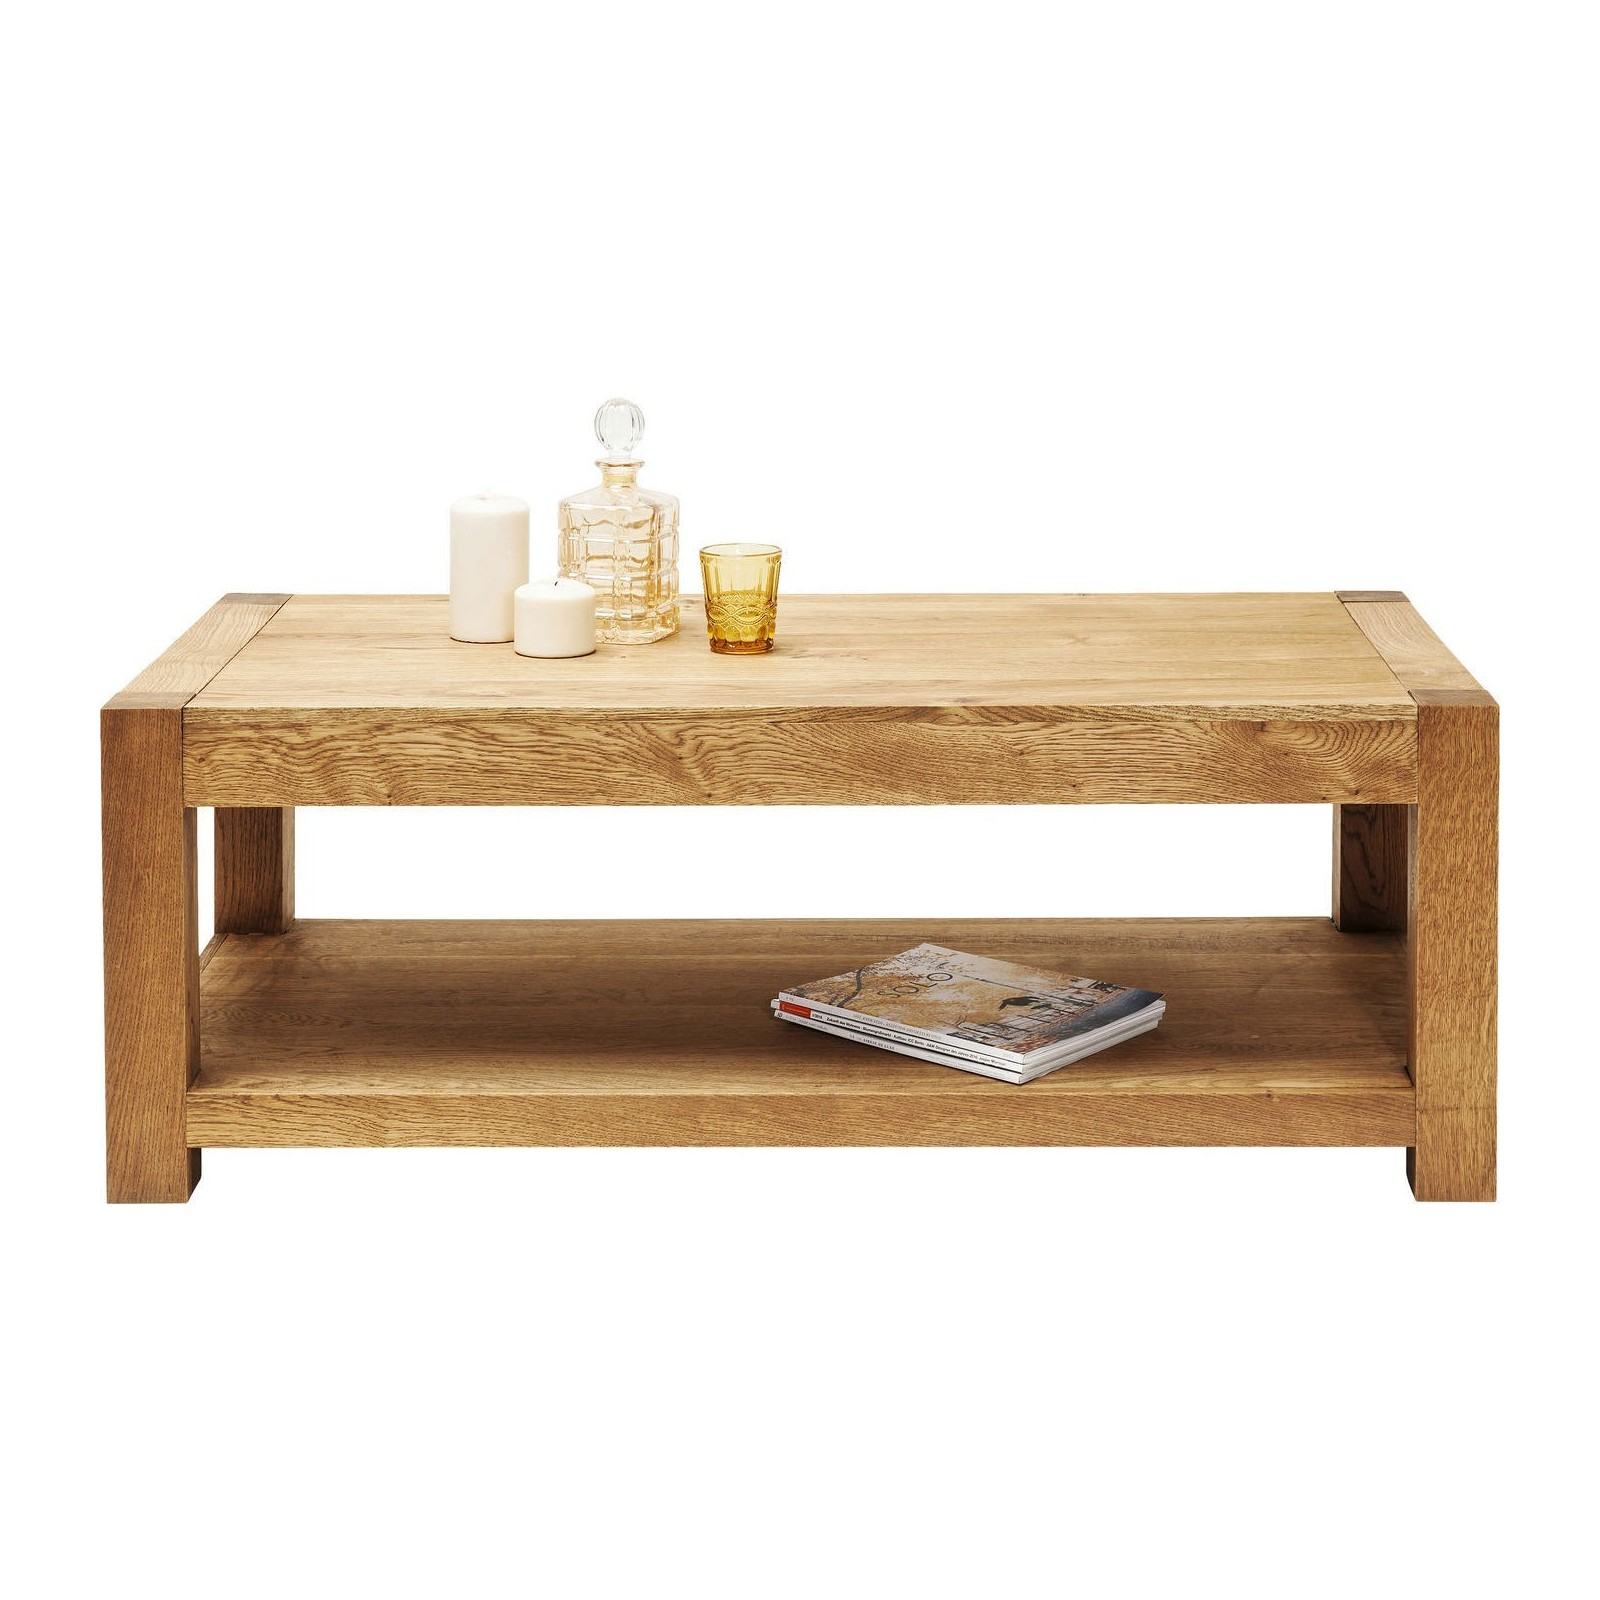 table-basse-attento-120x60cm-kare-design Frais De Table Basse Avec Rallonge